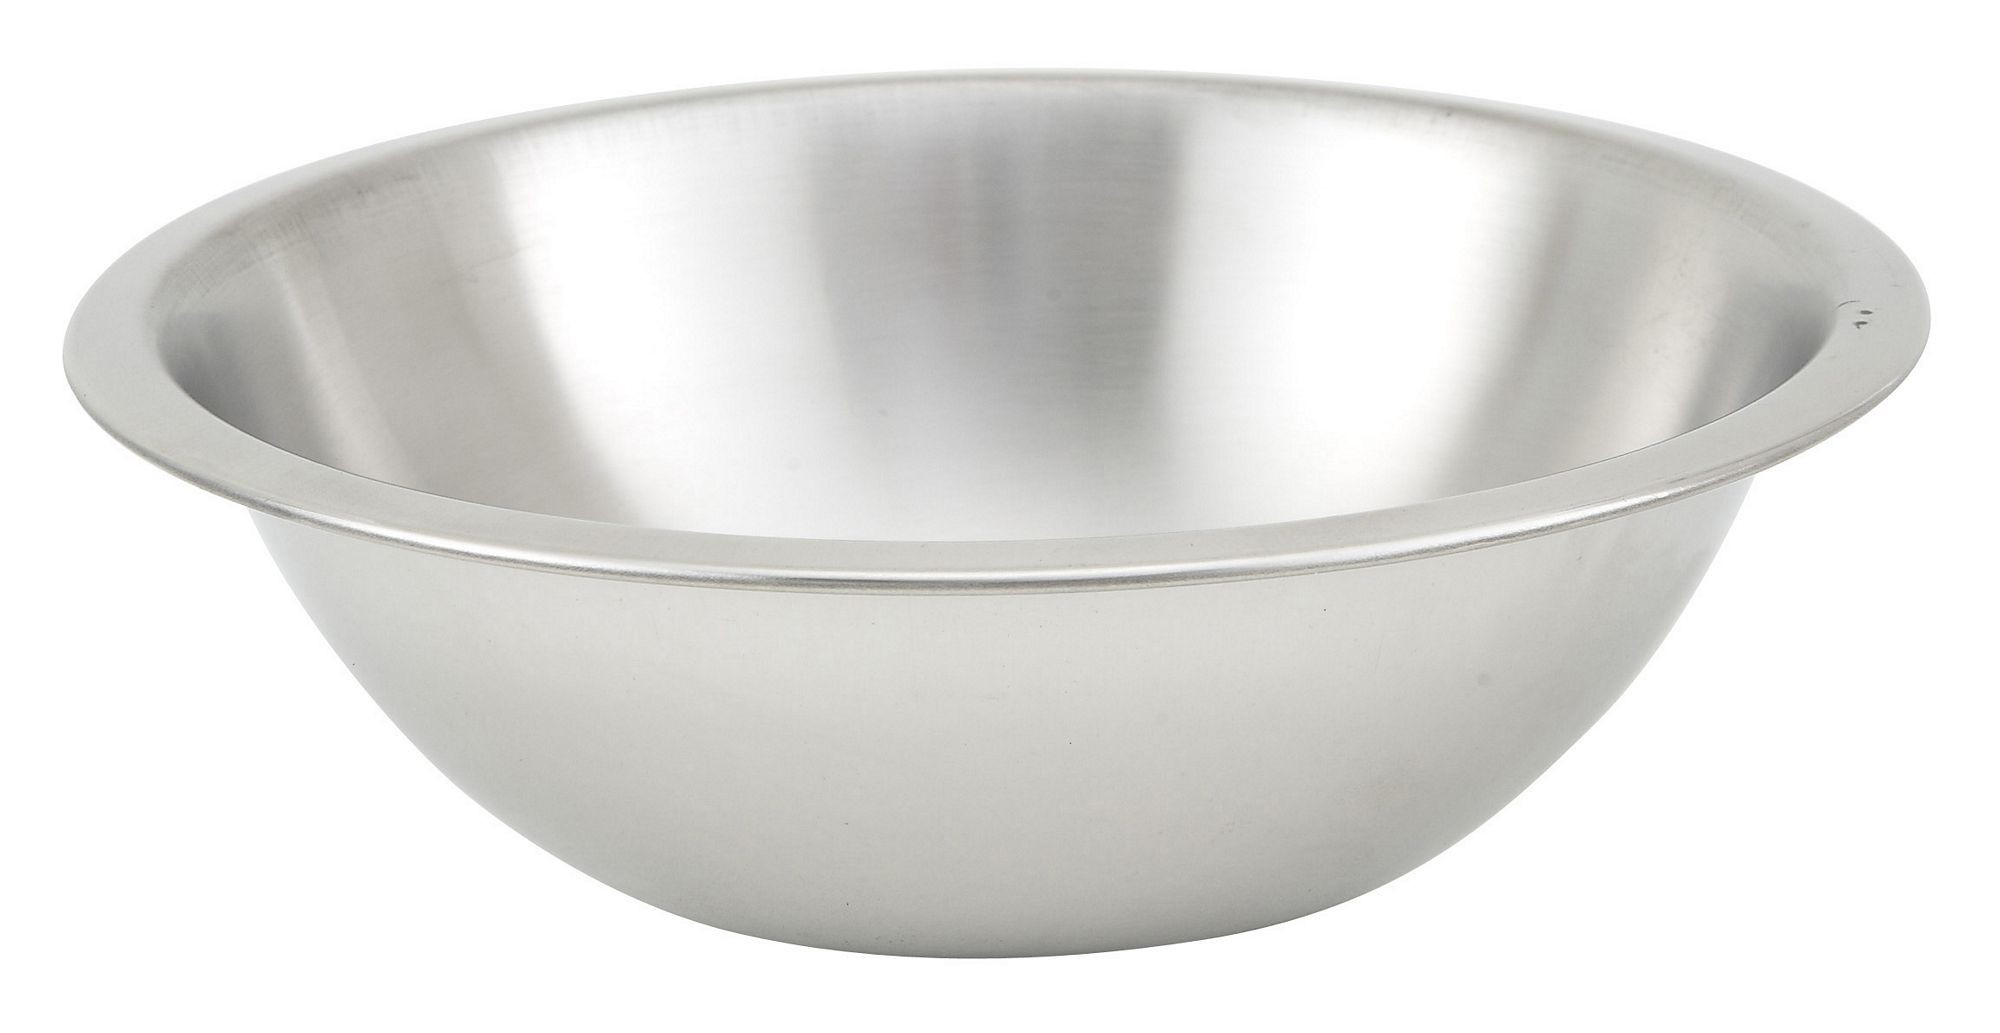 Winco MXHV-300 Heavy Duty Stainless Steel 3 Qt Mixing Bowl